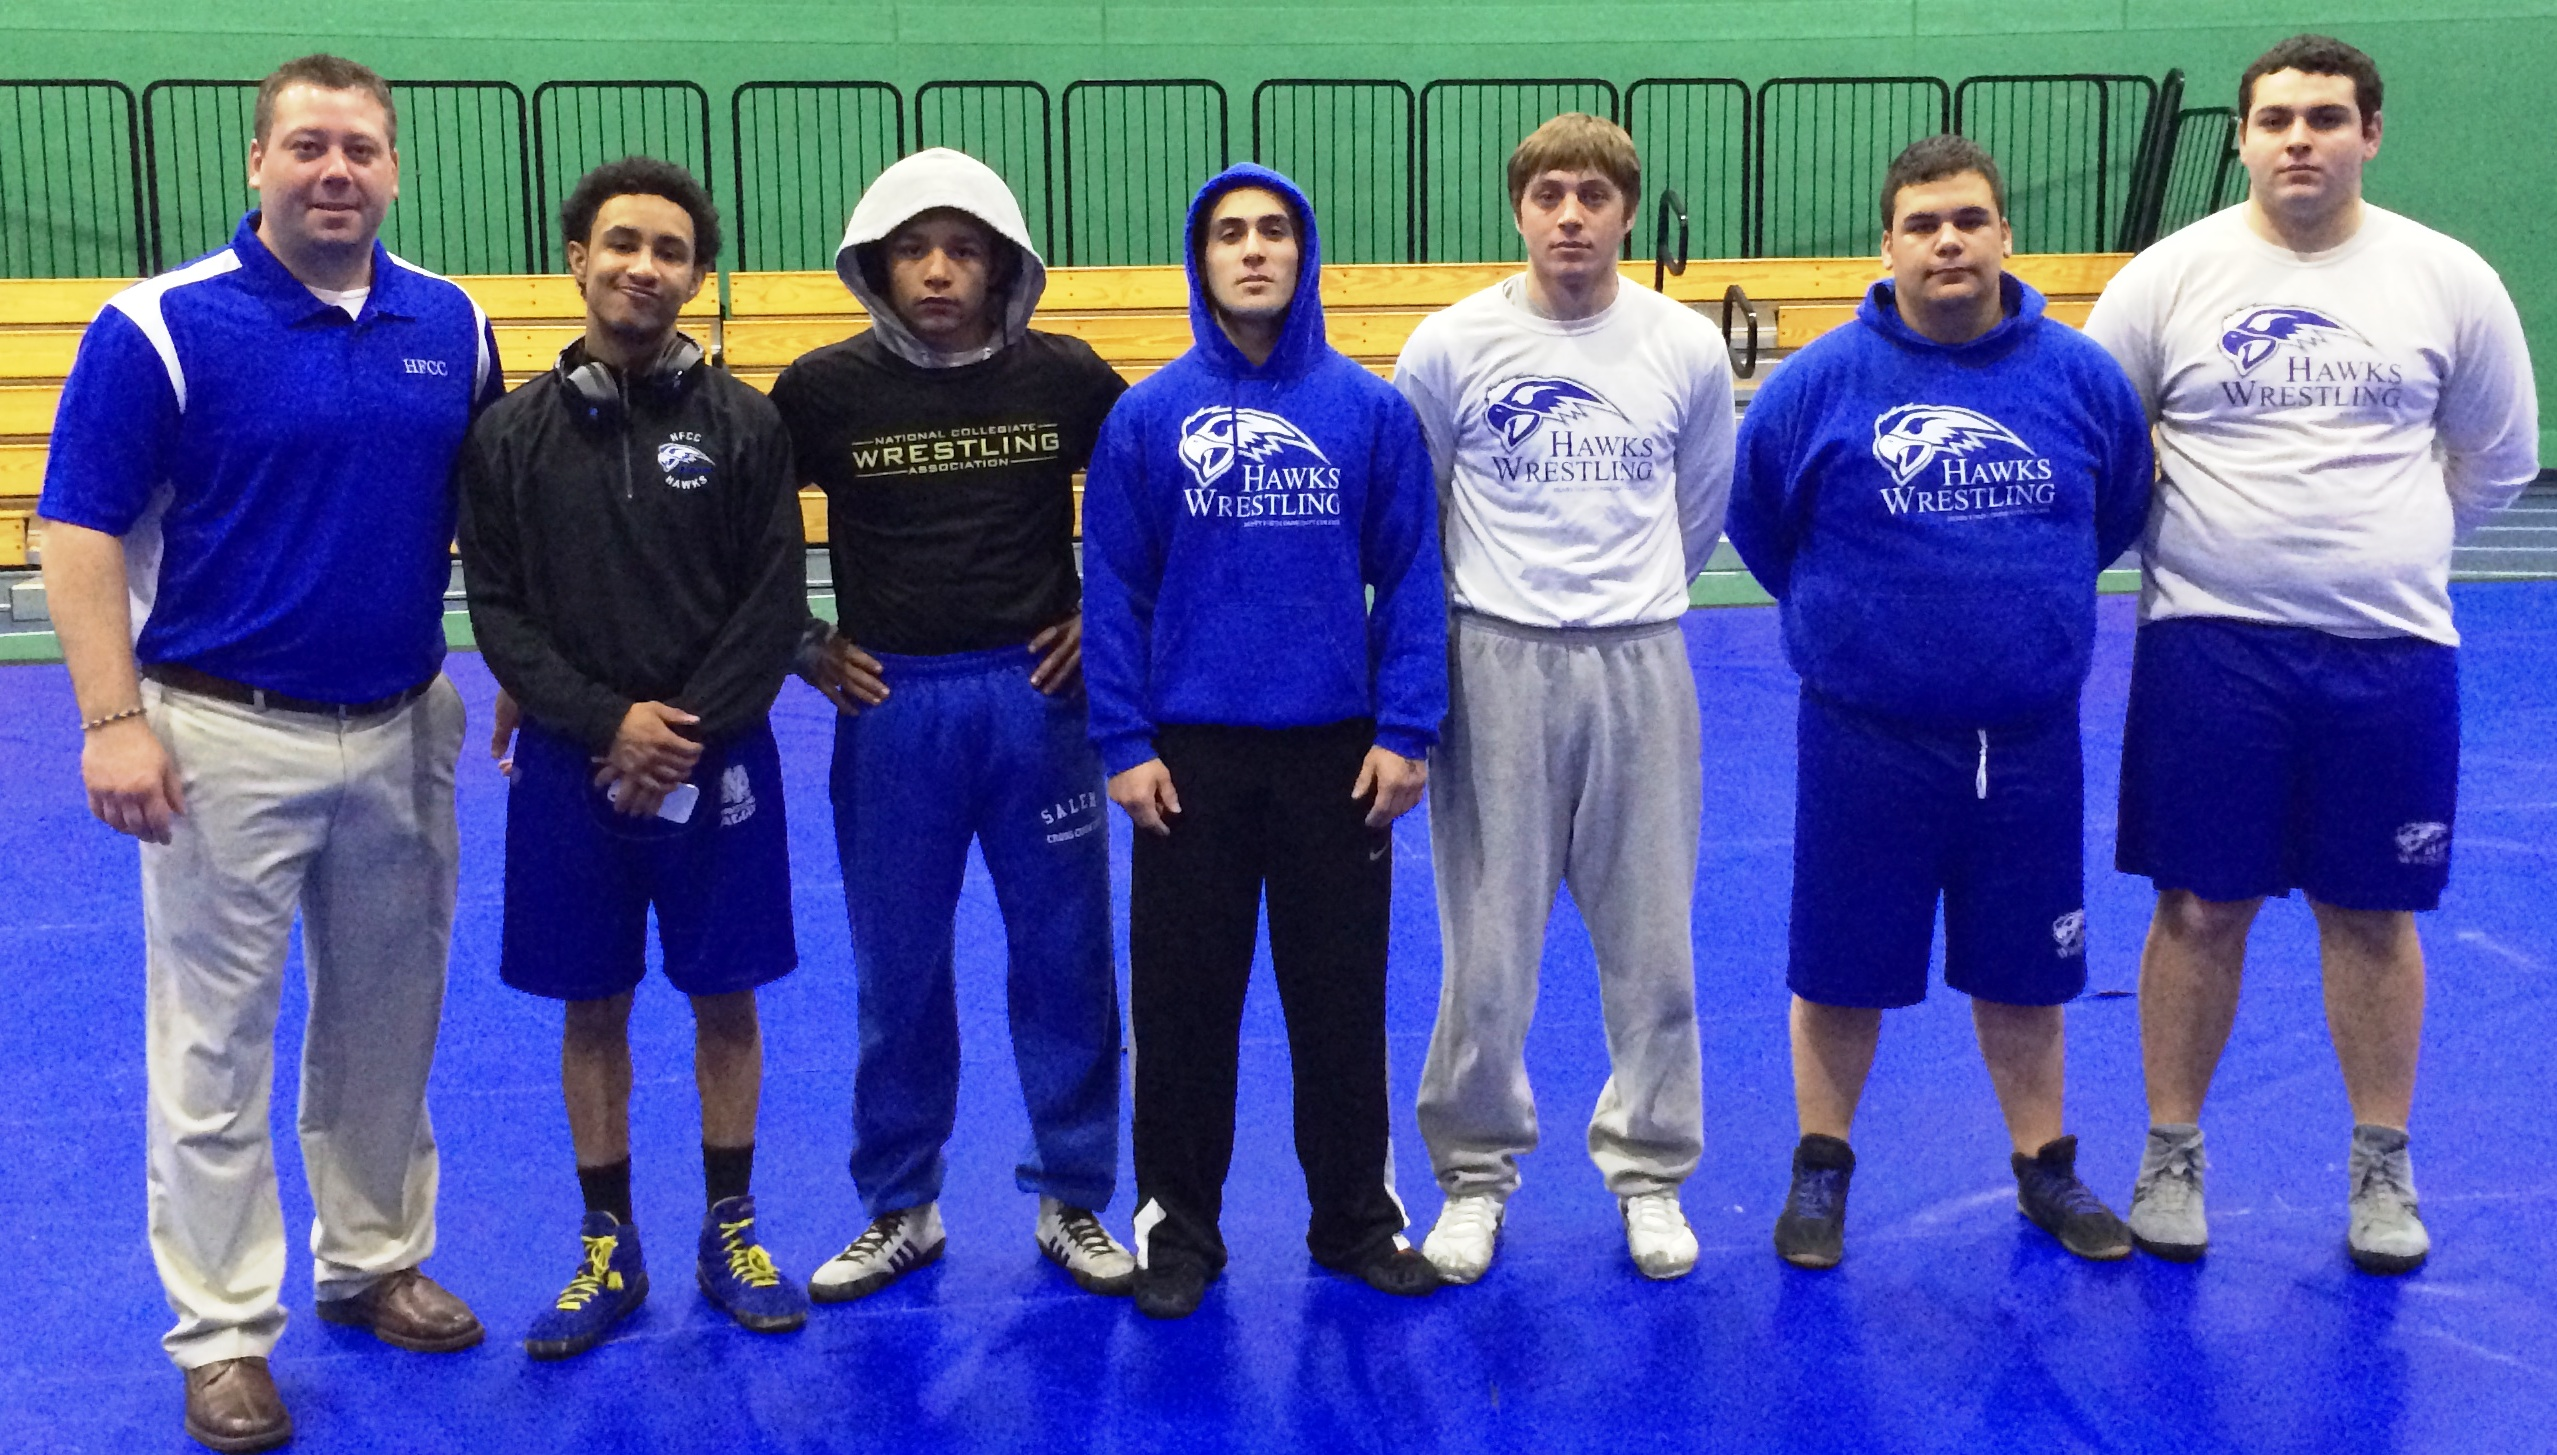 The HFCC Wrestling Club, left to right: Coach MacKenzie, Trey Berry of Plymouth (125 lb. class), Jesse O'Neal of Westland (133 lb. weight class), Ali Saad of Dearborn (141 lb. weight class), Jeremy Stankewitz of Plymouth (157 lb. weight class), Hass Doueik of Dearborn Heights (285 lb. weight class), and Dave Velez of Southgate (285 lb. weight class).